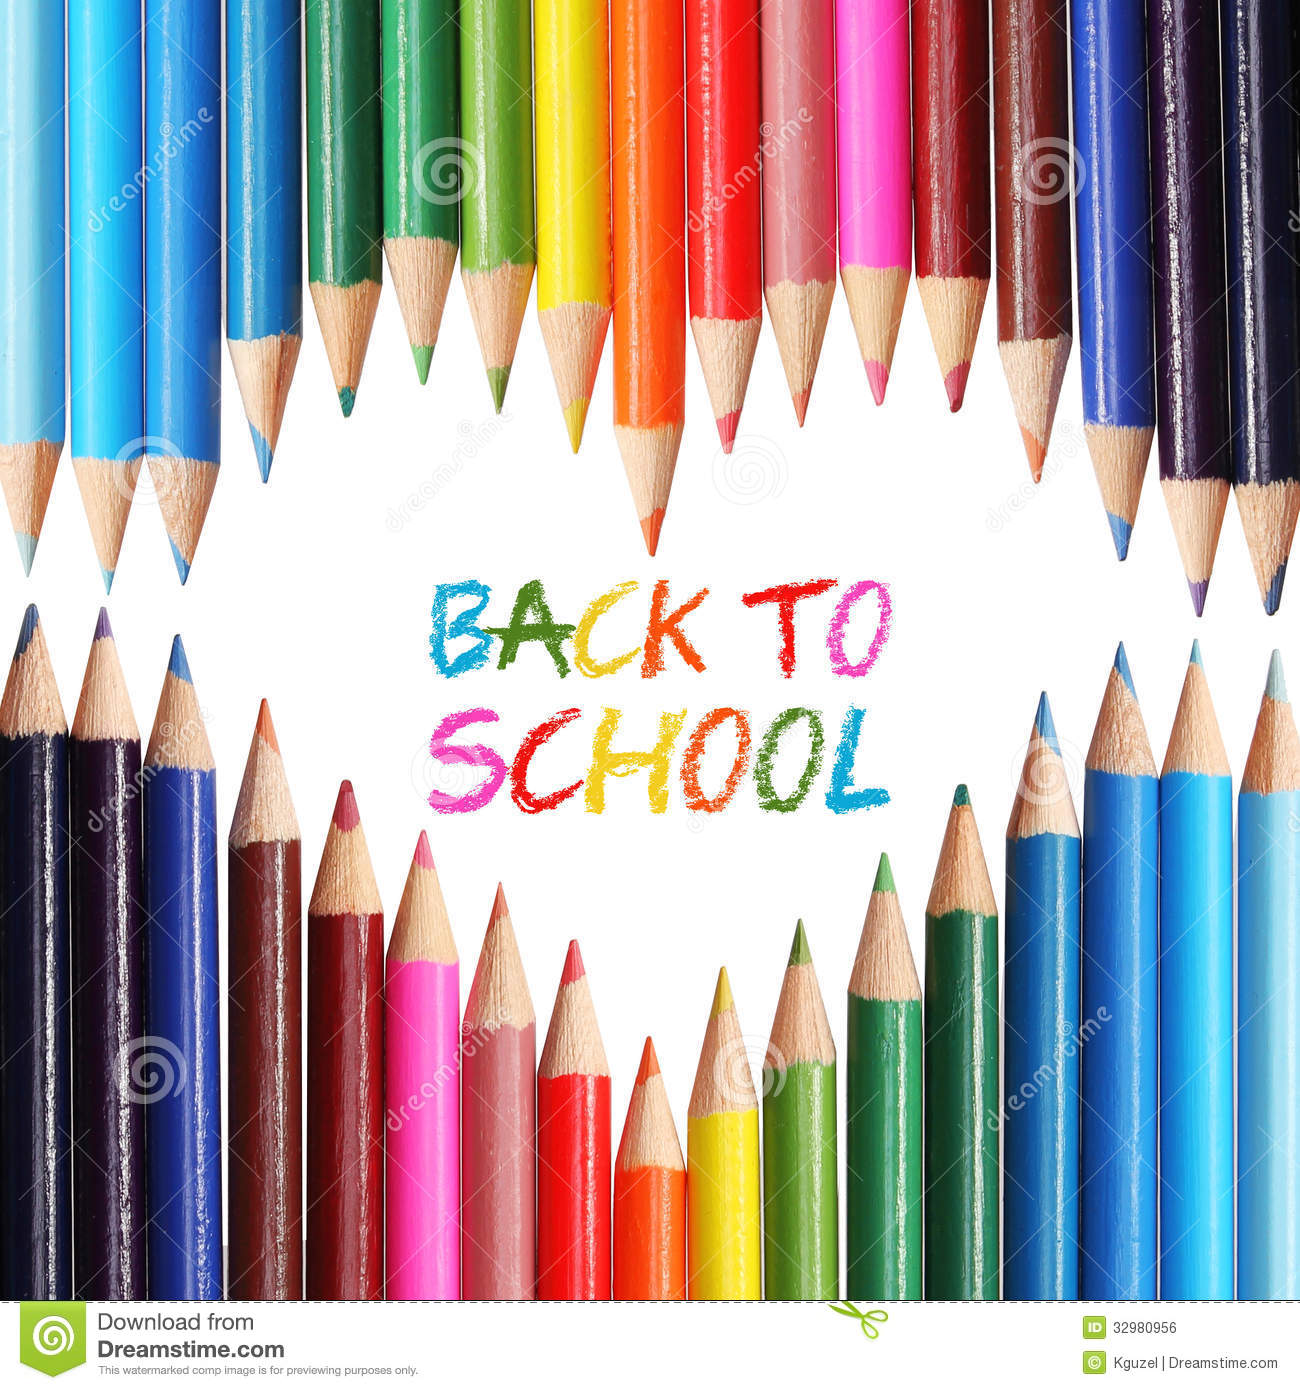 Back To School Concept Colorful Pencils Arranged As Heart